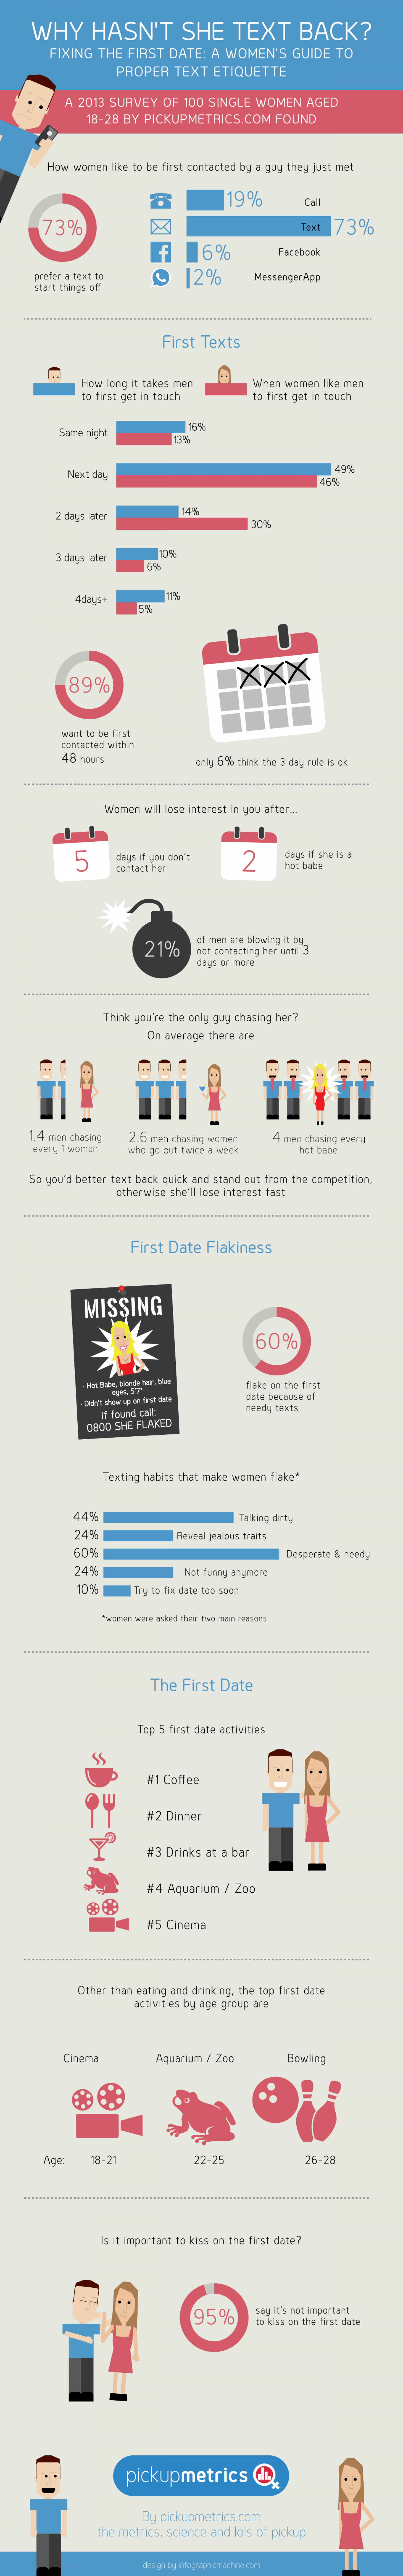 Why Hasn't She Text Back? Infographic